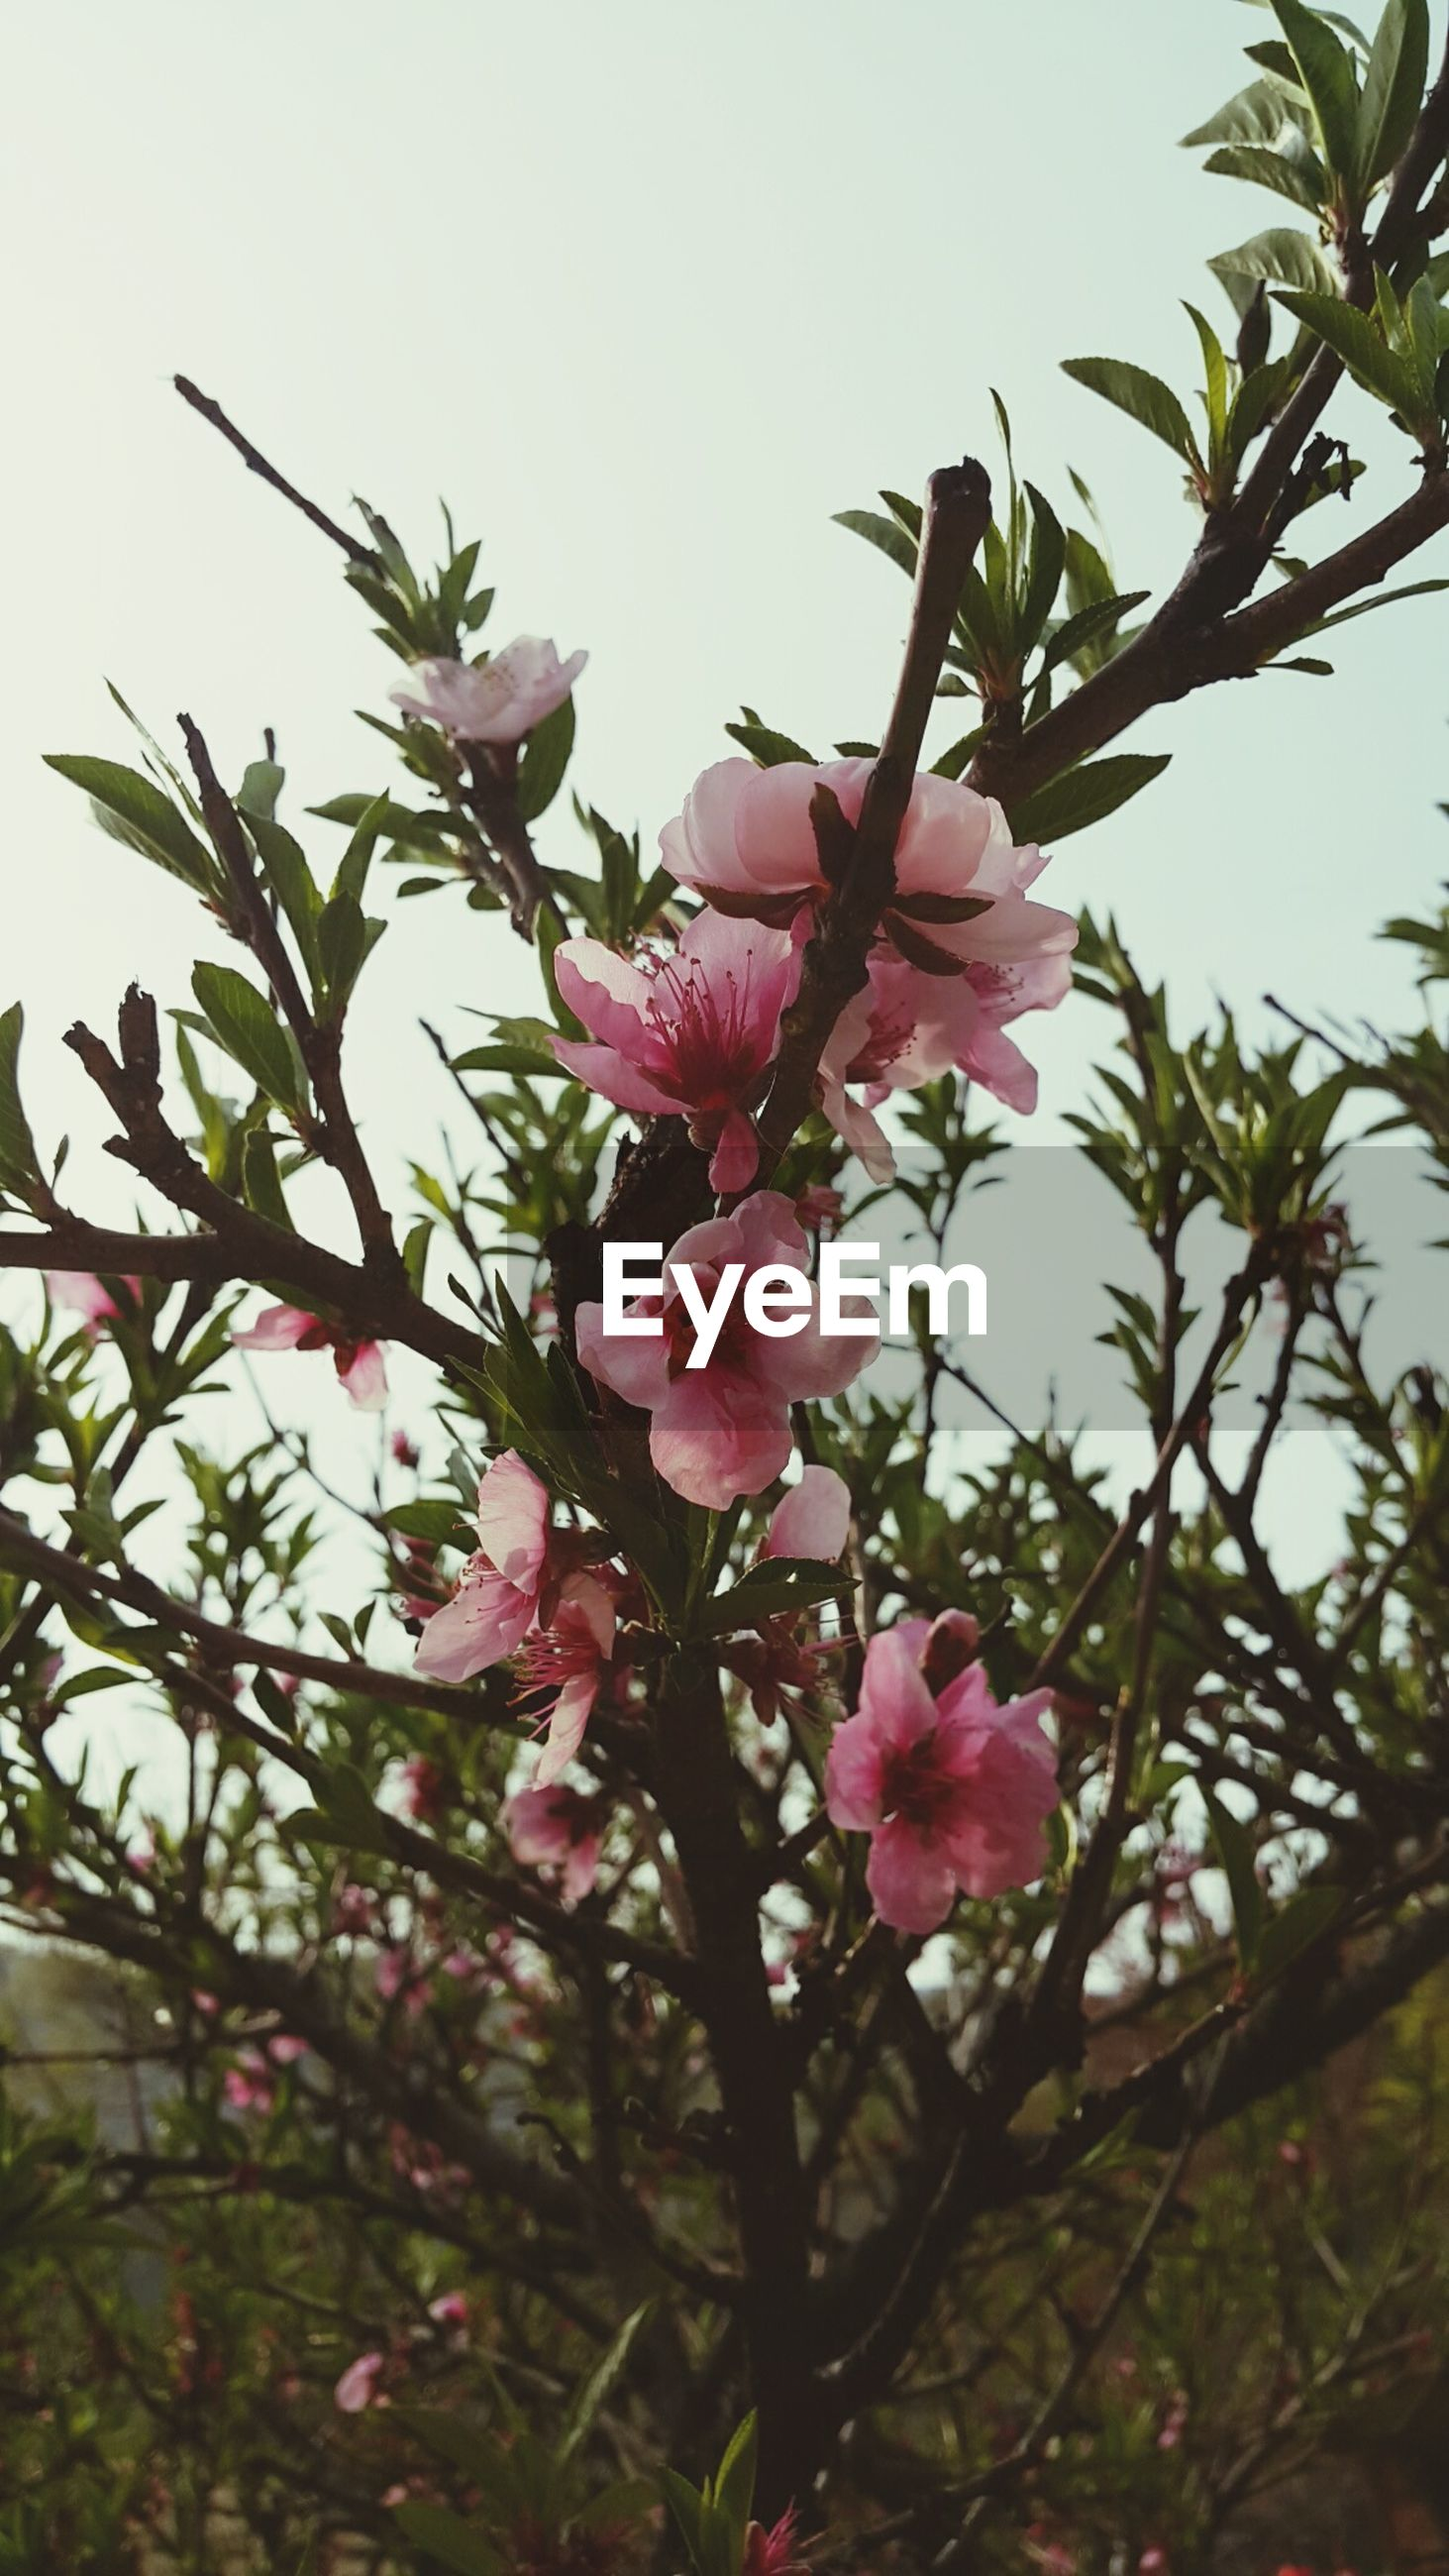 growth, flower, nature, pink color, beauty in nature, tree, low angle view, no people, freshness, plant, petal, sky, close-up, green color, outdoors, leaf, branch, day, fragility, flower head